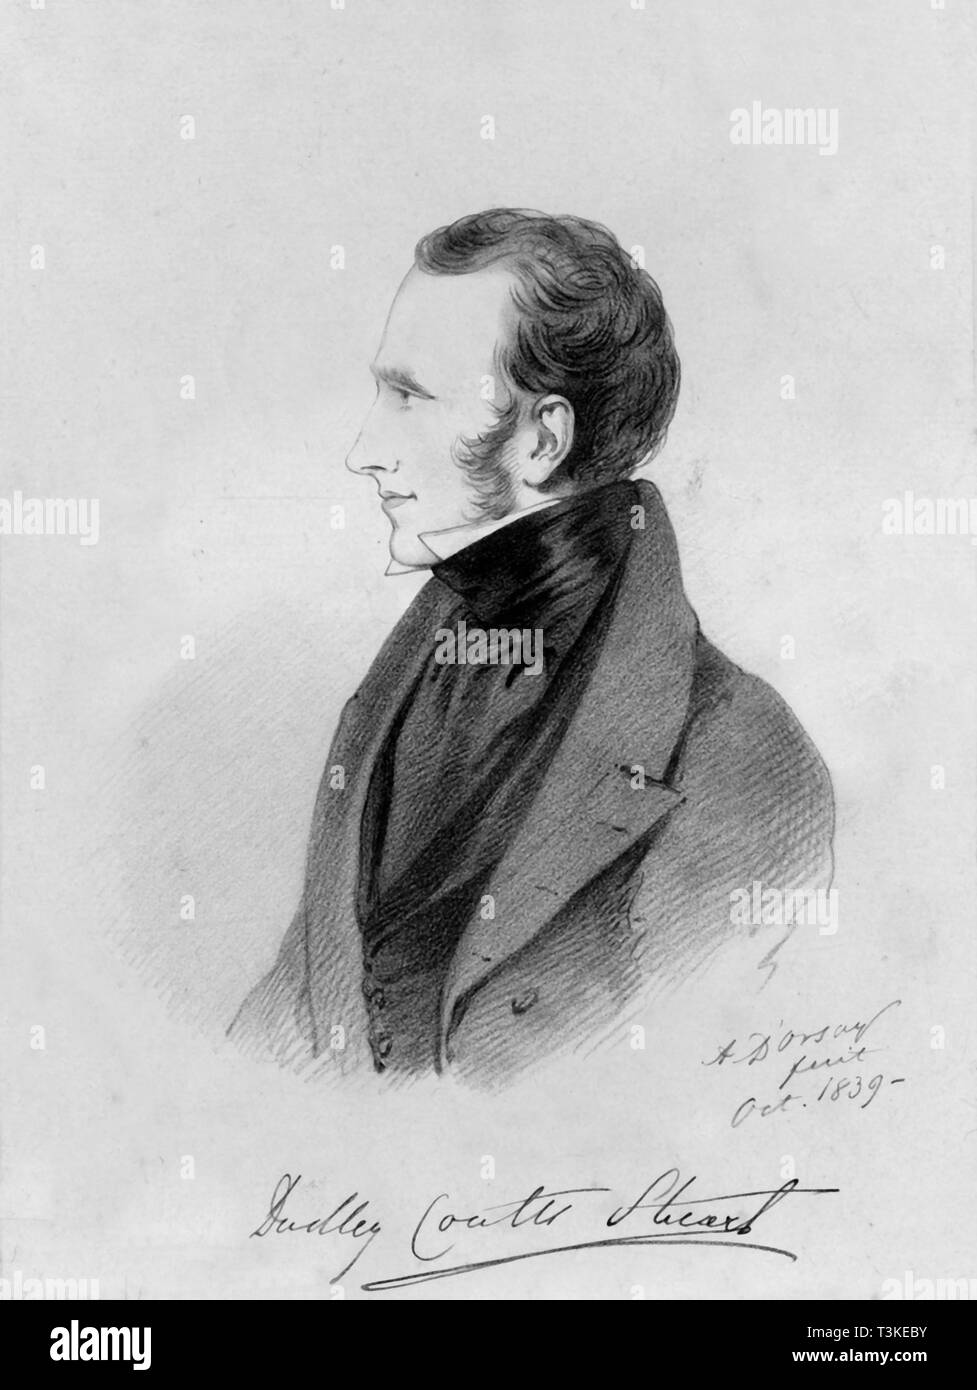 'Dudley Coutts Stuart', 1839. Creators: Alfred d'Orsay, Richard James Lane. - Stock Image